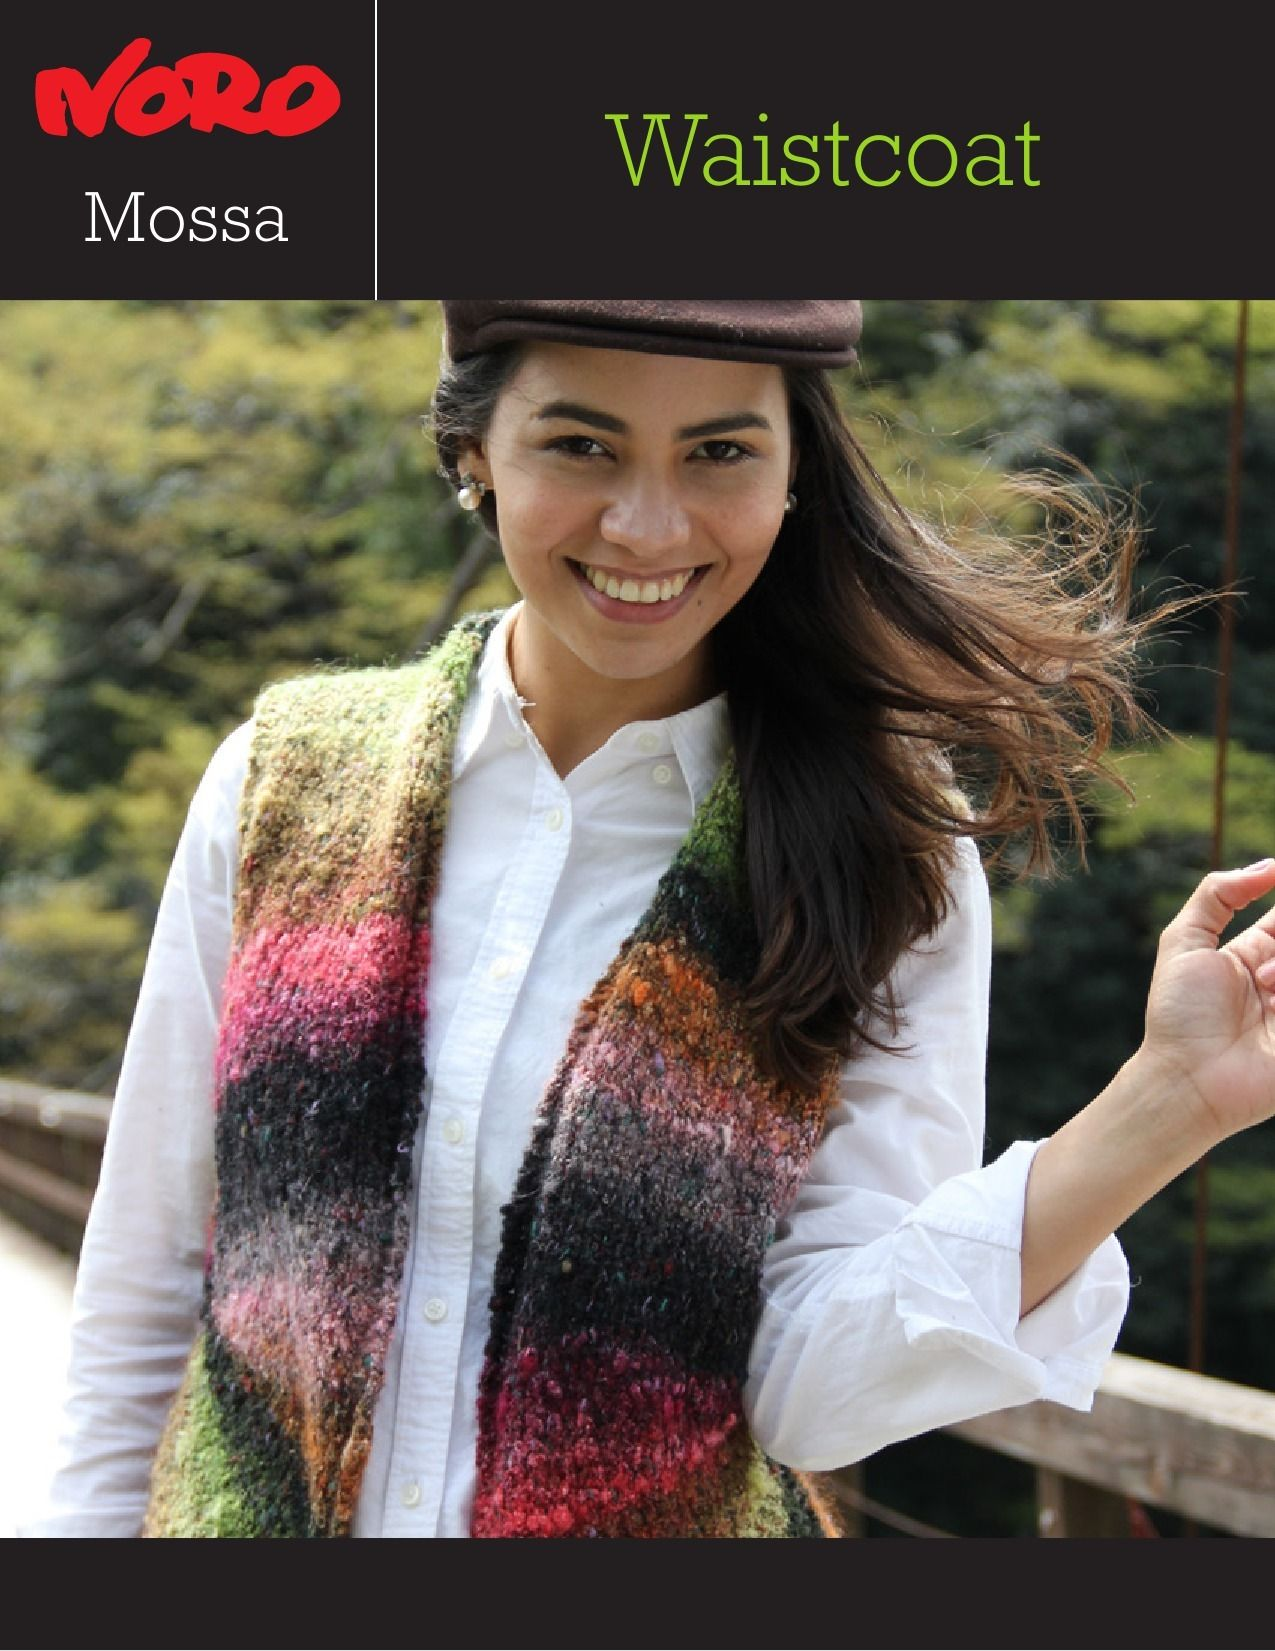 7f4d9e0da Waistcoat in Noro Mossa. Discover more Patterns by Noro at LoveKnitting. We  stock patterns